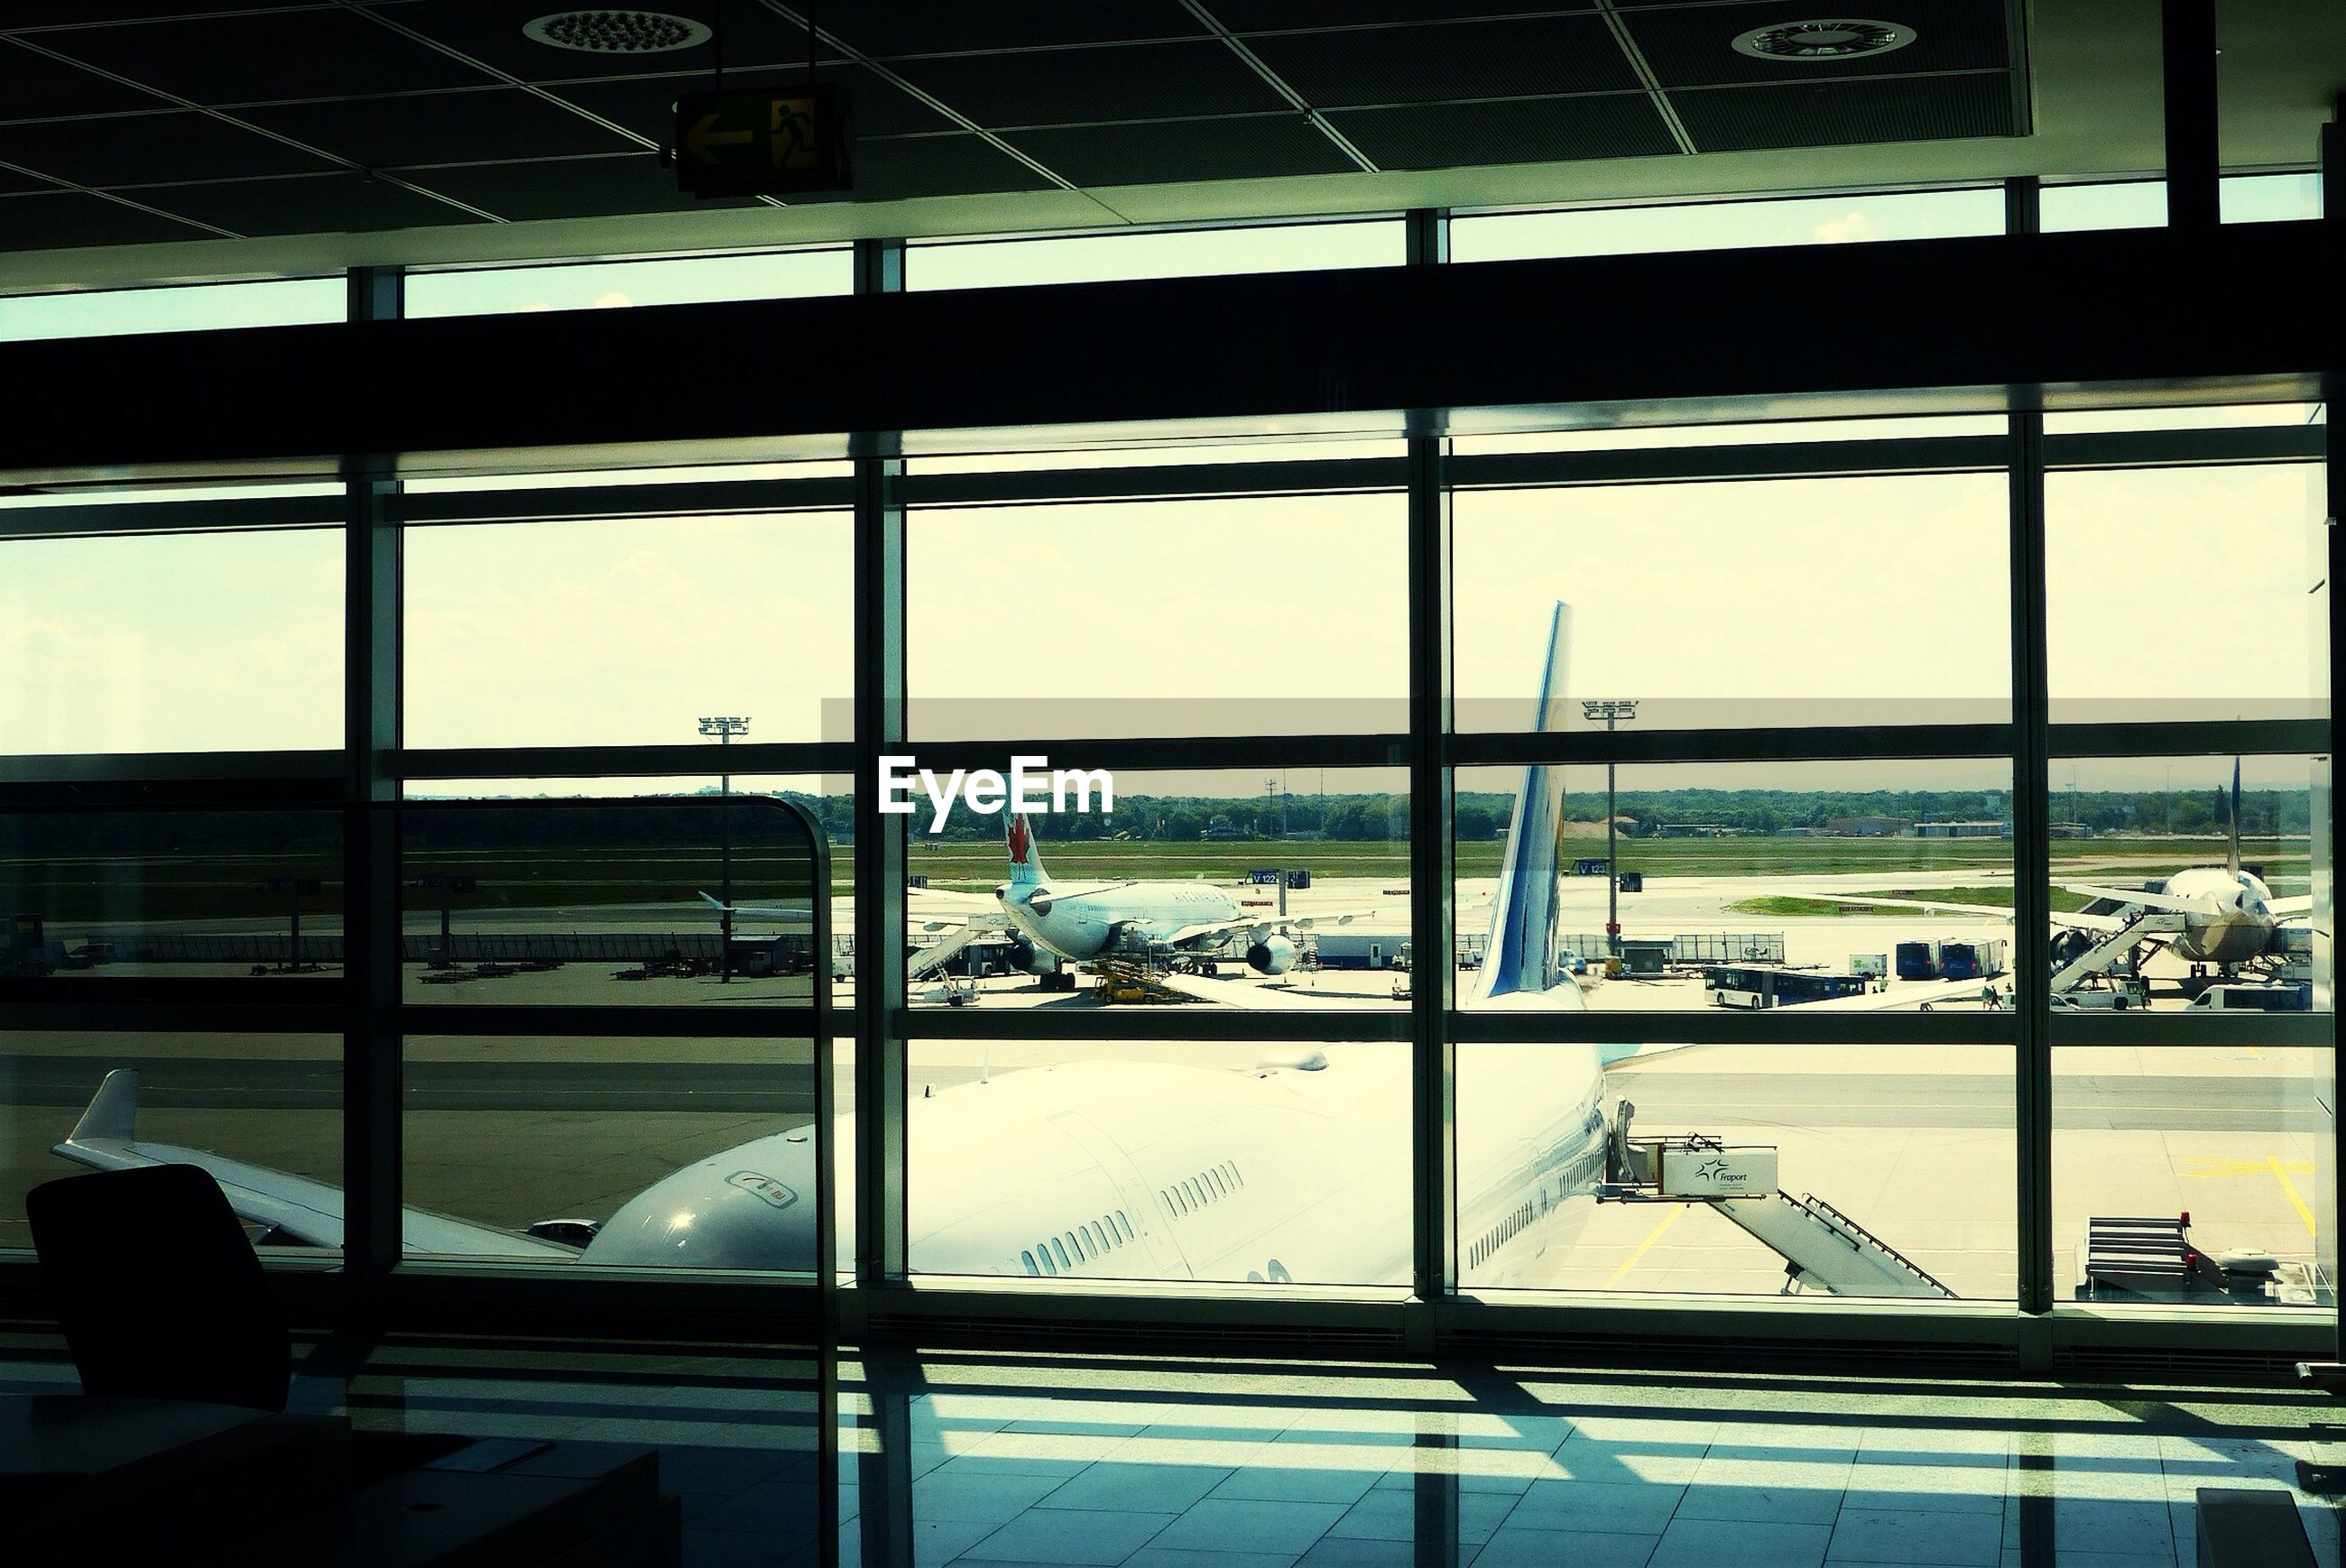 window, glass - material, indoors, transparent, built structure, architecture, glass, sky, airport, city, day, chair, restaurant, looking through window, table, reflection, modern, men, building exterior